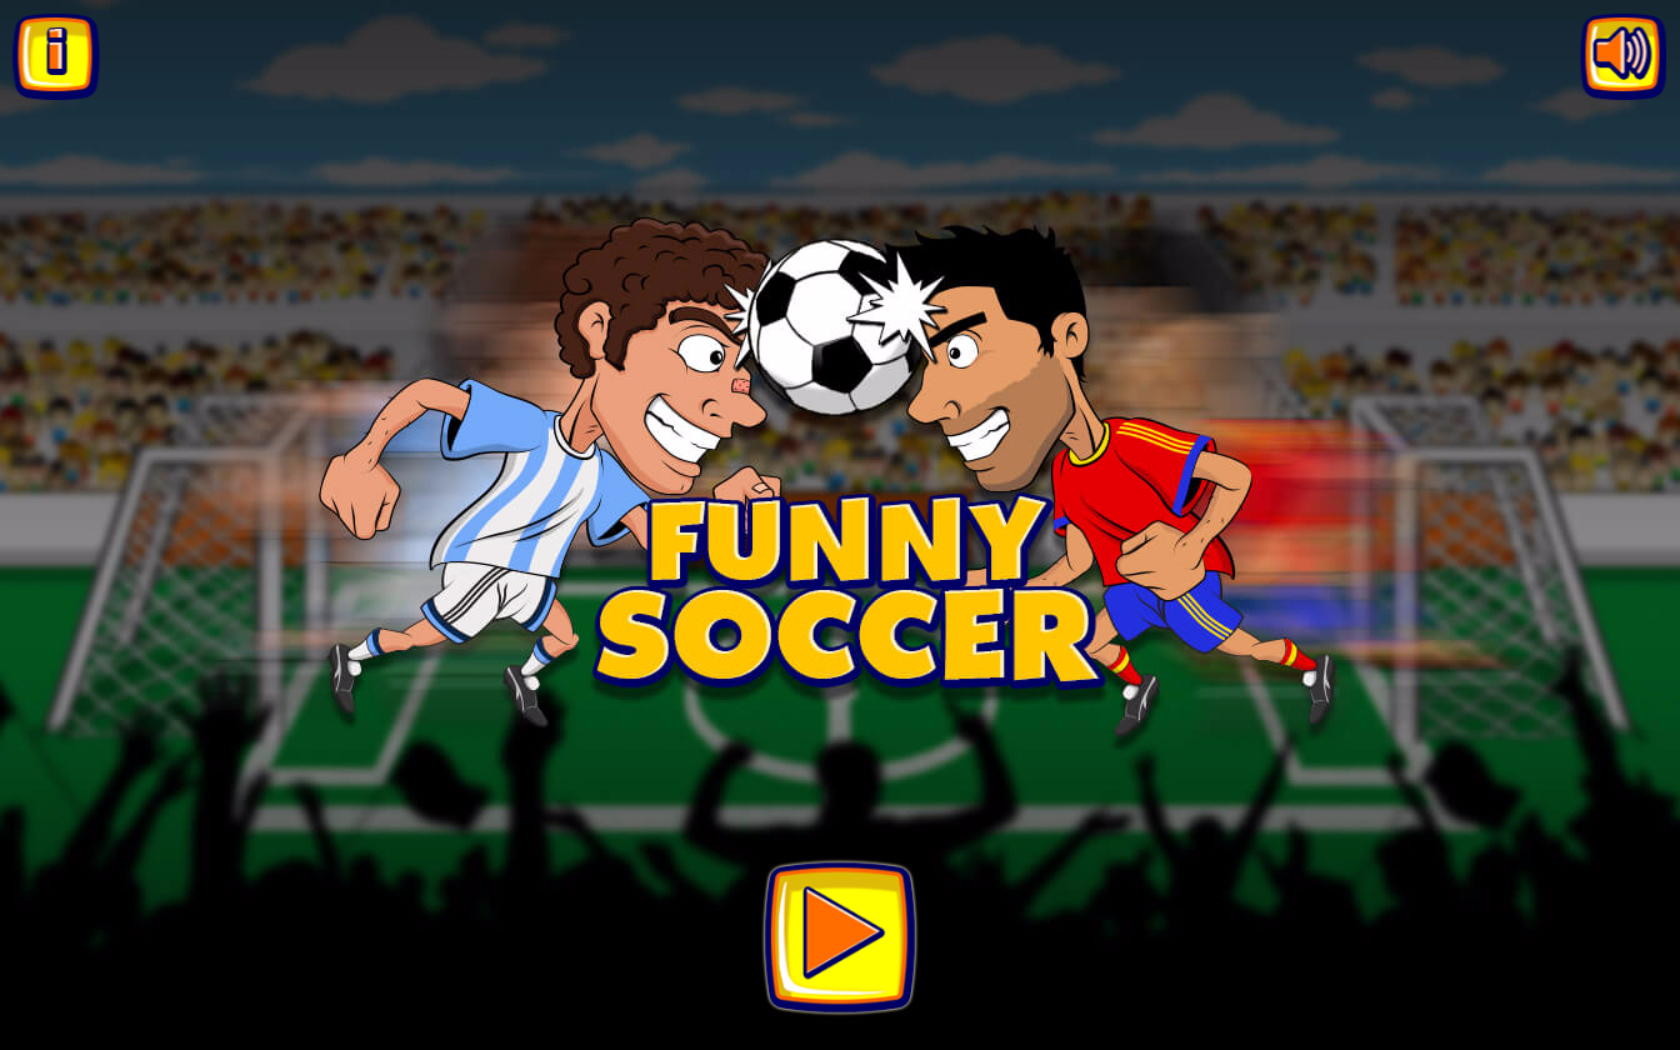 Funny sports video games